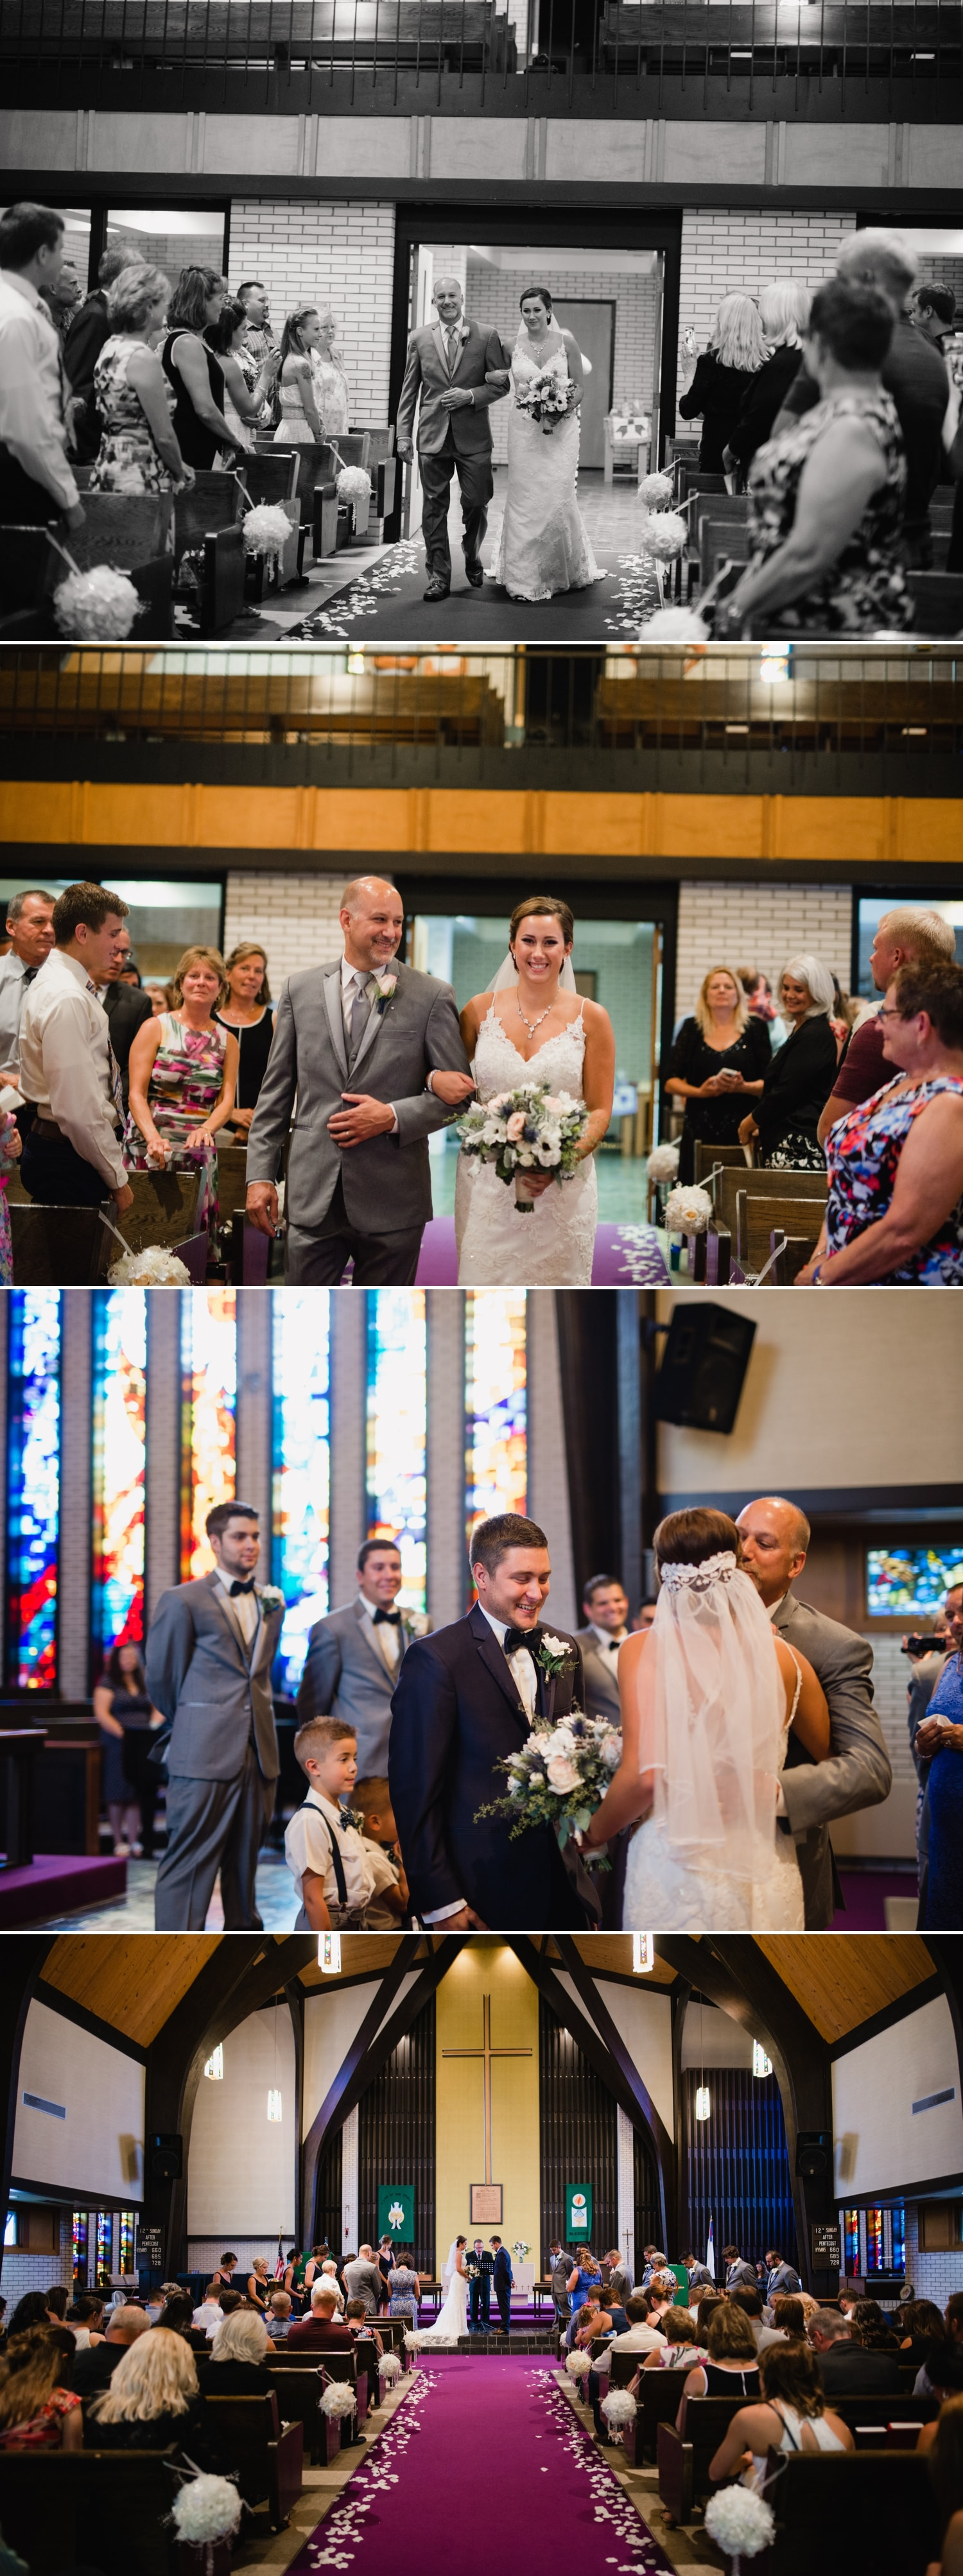 Heckman Wedding Blog 3.jpg